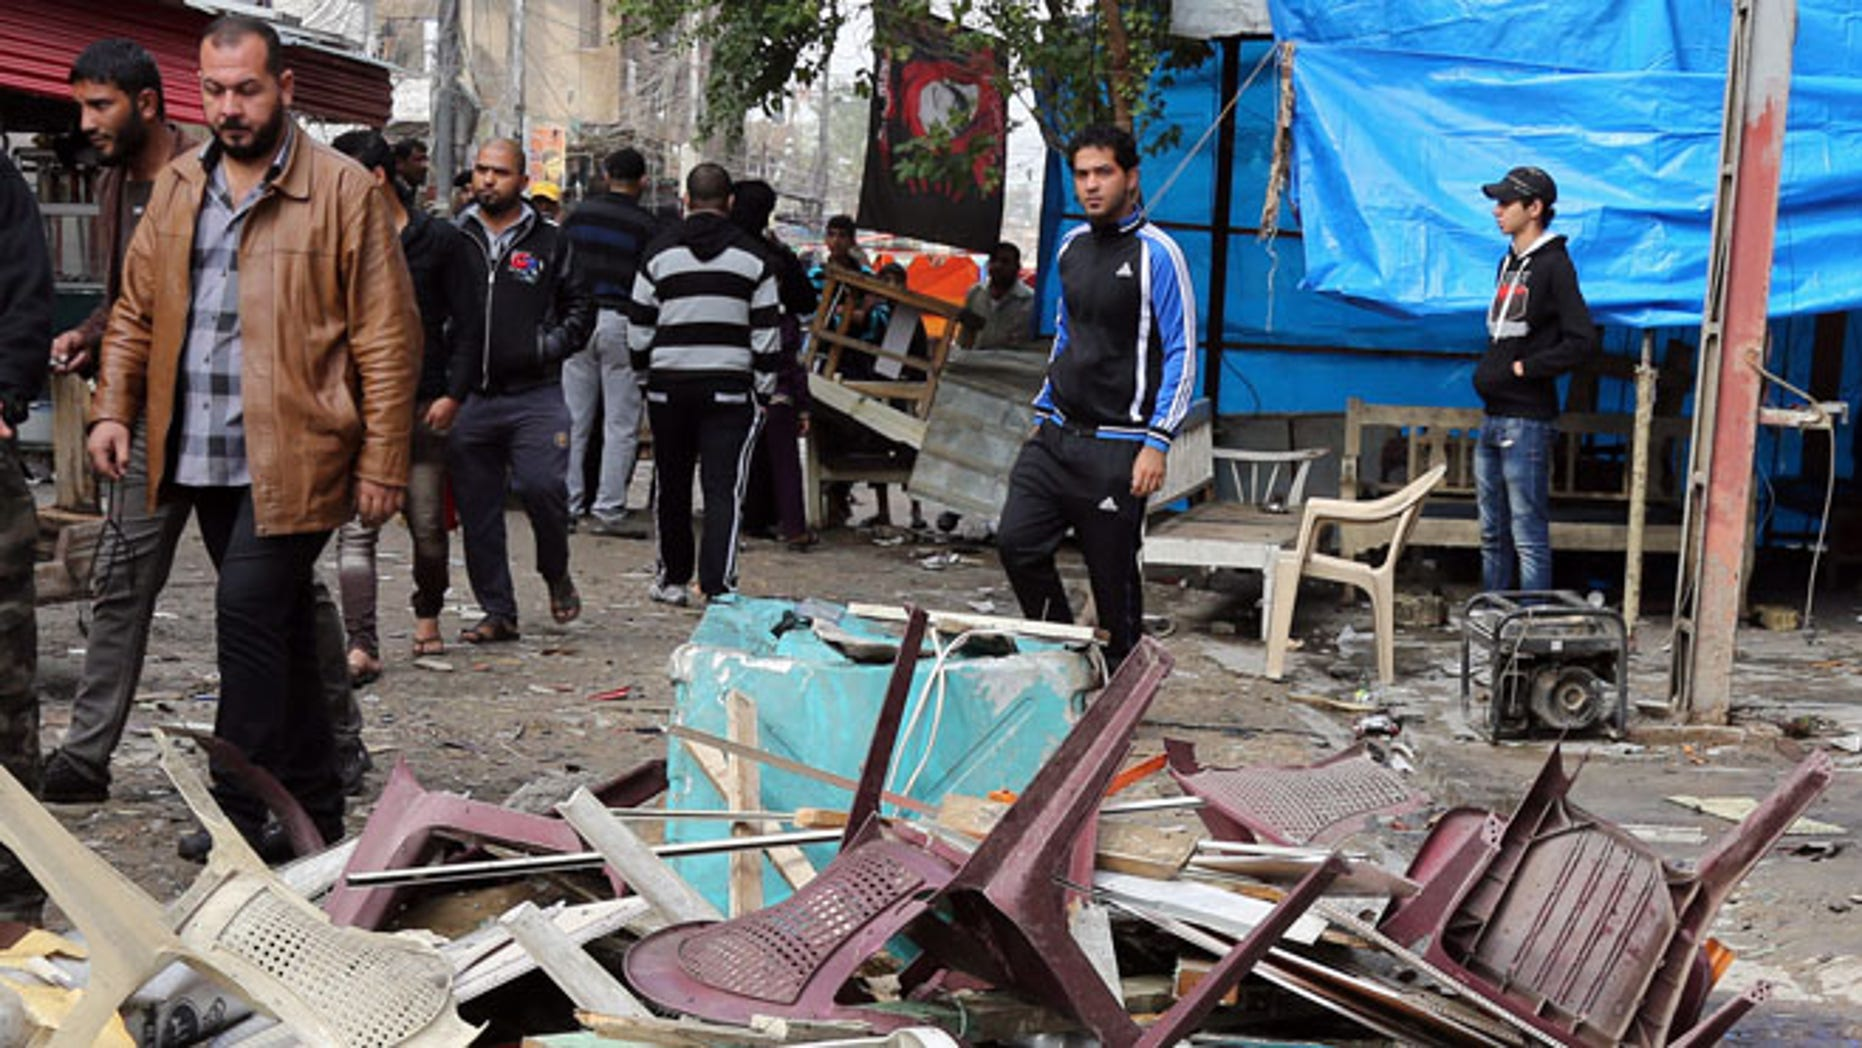 Nov. 21, 2013: Iraqis inspect the aftermath of a late-night bombing at a cafe in Bayaa neighborhood, southwestern Baghdad, Iraq.